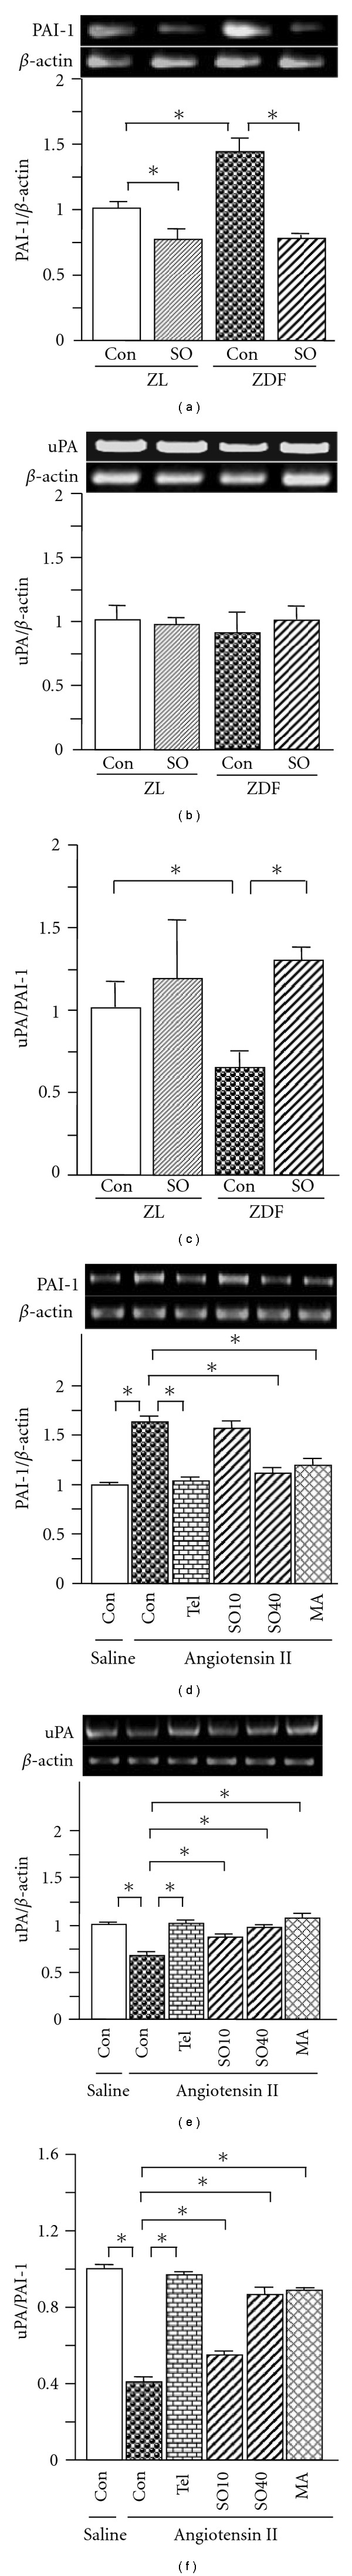 Renal expression of PAI-1 (a), uPA (b) mRNAs, and the ratio of uPA to PAI-1 (c) in ZL and ZDF rats, and levels of PAI-1 (d) and uPA (e) mRNAs, and the ratio of uPA to PAI-1 (f) in rat mesangial cells. In cell culture, SO (SO10: 10 and SO40: 40 μ g/ml), MA (25 μ M) or Tel (10 μ M) was added 1 h prior to treatment with angiotensin II (10 −6 M), followed by 24-h incubation. Total RNA was extracted from renal tissues and the mesangial cells using TRIzol, respectively. The relative levels of specific mRNAs were determined by RT–PCR. Results were normalized to β -actin. All values are means ± SEM ( n = 5, each group in vivo ; n = 3, each group in vitro ). * P